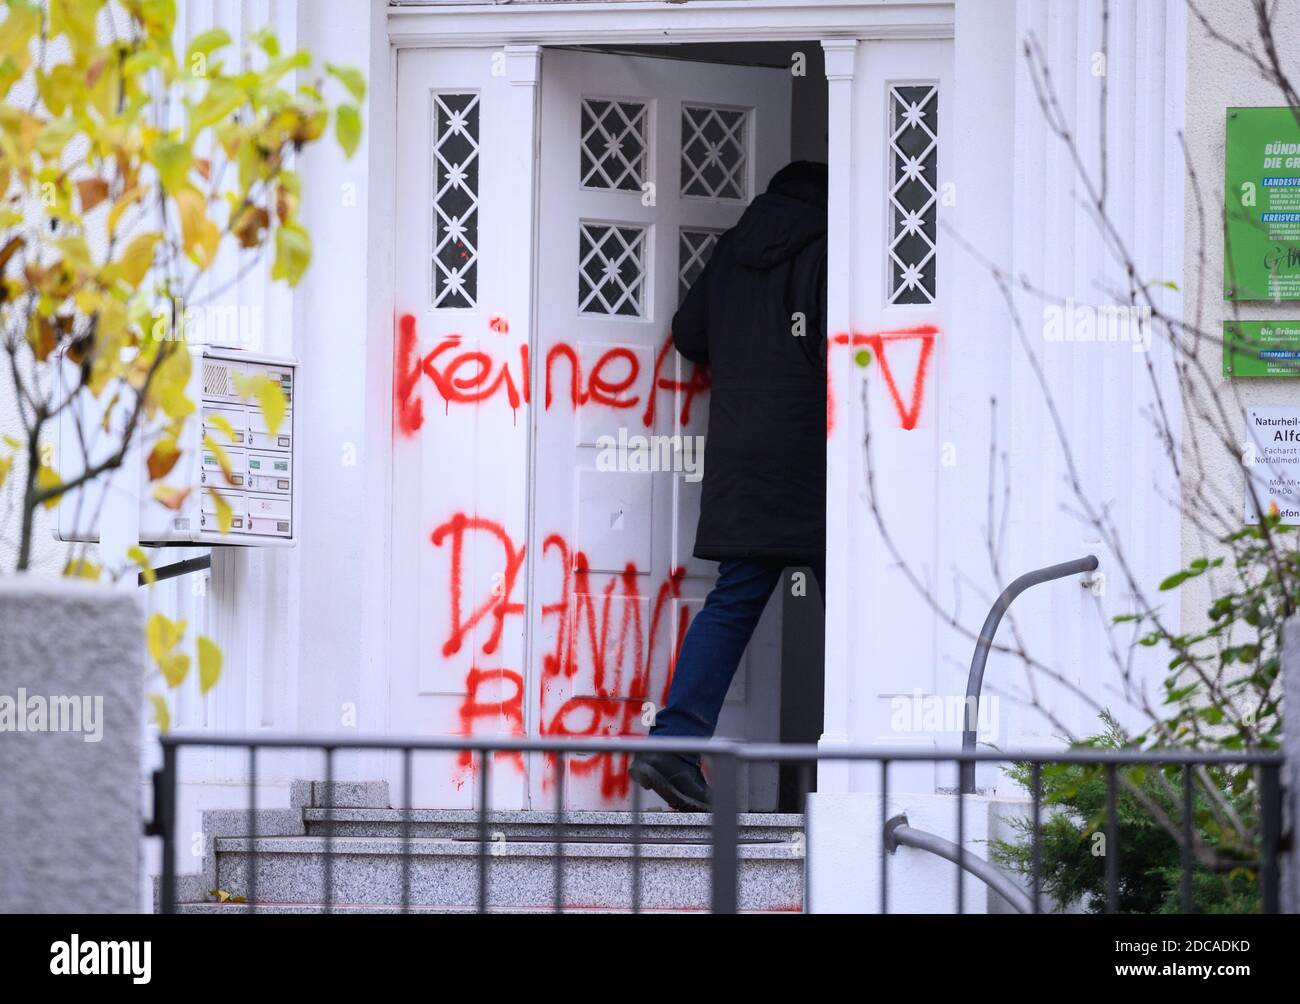 """Wiesbaden, Germany. 20th Nov, 2020. A man goes to the party headquarters of Bündnis90/The Greens in Hesse. The entrance door is smeared with the slogan """"No A49 Danni stays"""". Activists from Robin Wood, environmental and nature conservation organisation, have occupied two trees in front of the party headquarters of the Hessian Greens in the state capital. The organization is protesting against the clearings in connection with the expansion of the A49 and wants to remind the Greens in Hesse of their political responsibility. Credit: Andreas Arnold/dpa/Alamy Live News Stock Photo"""